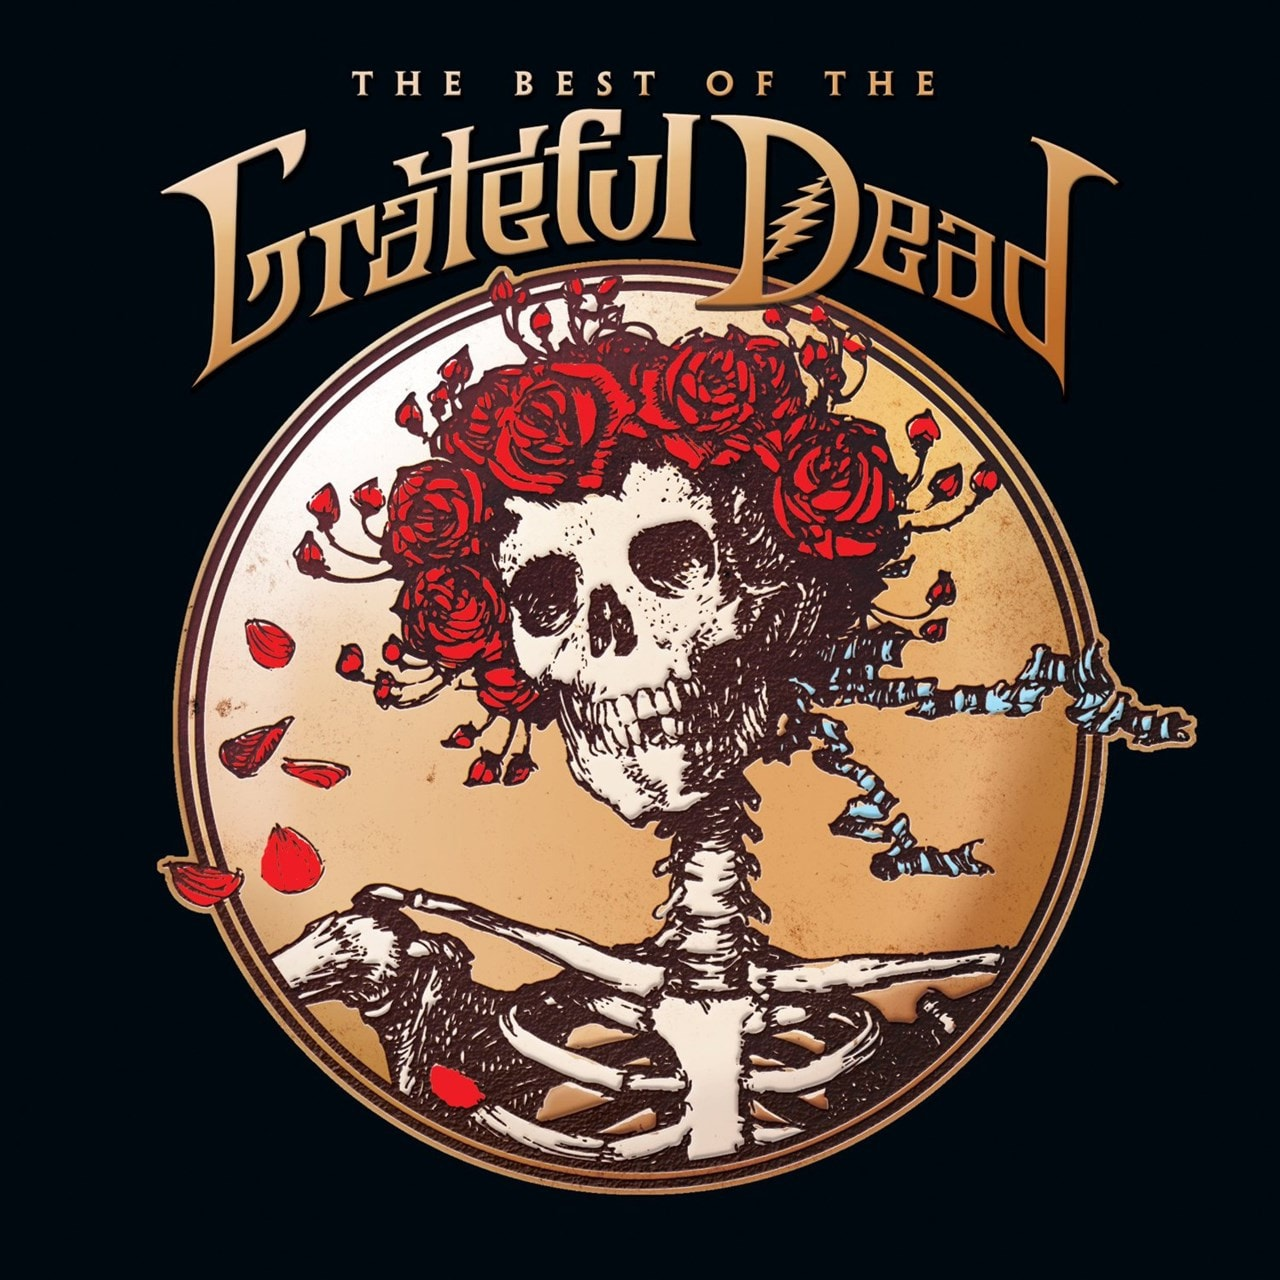 The Best of the Grateful Dead - 1